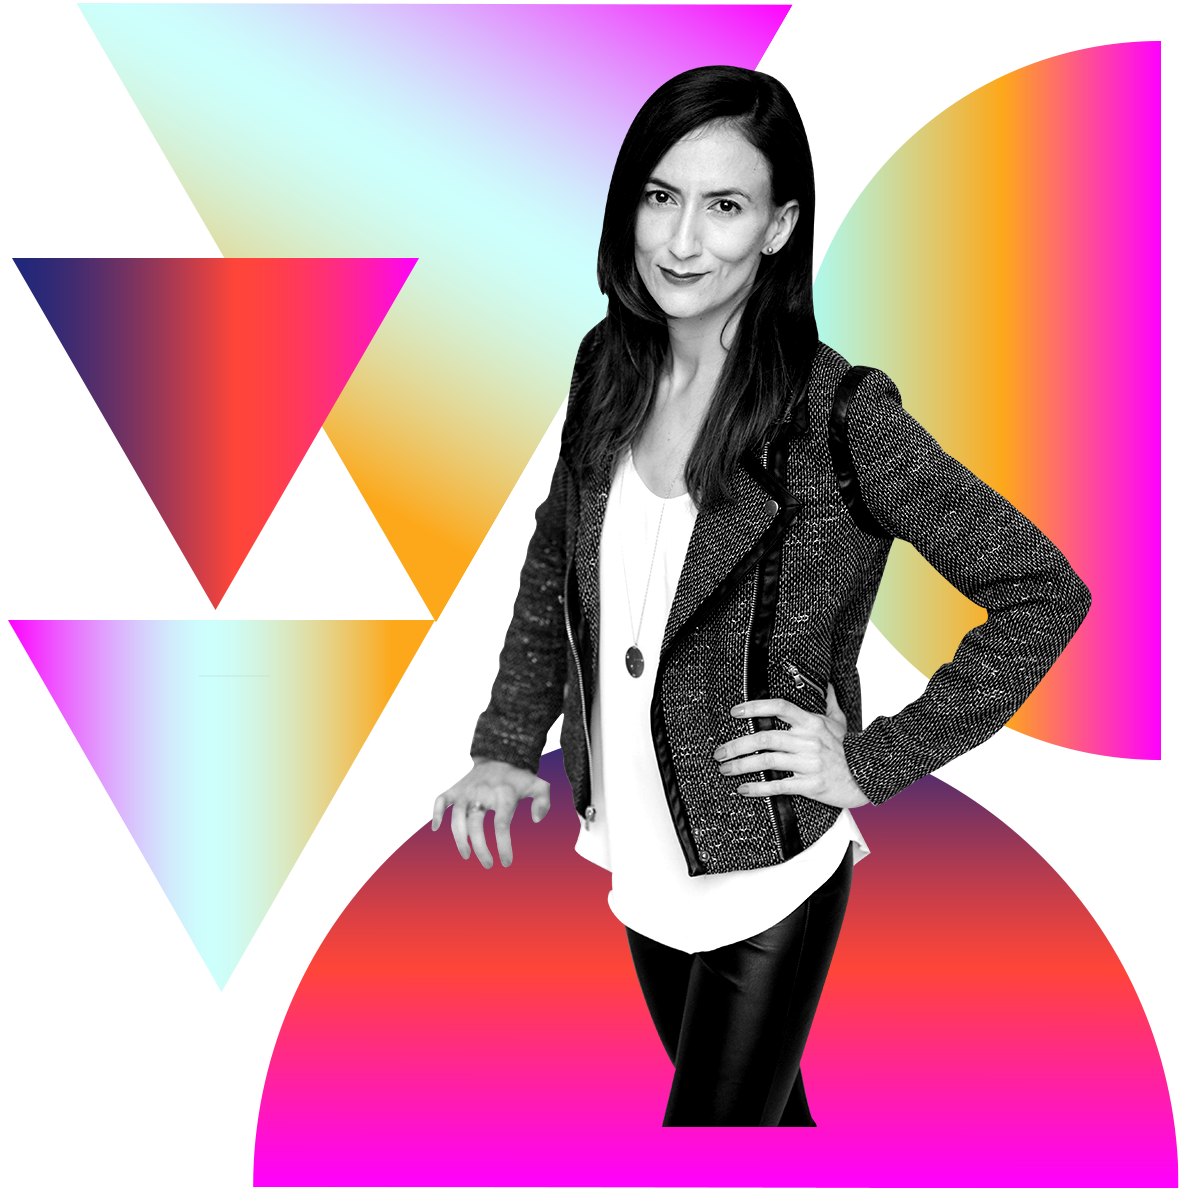 Photo illustration of Rebecca Buckwalter-Poza in black and white surrounded by colored gradients